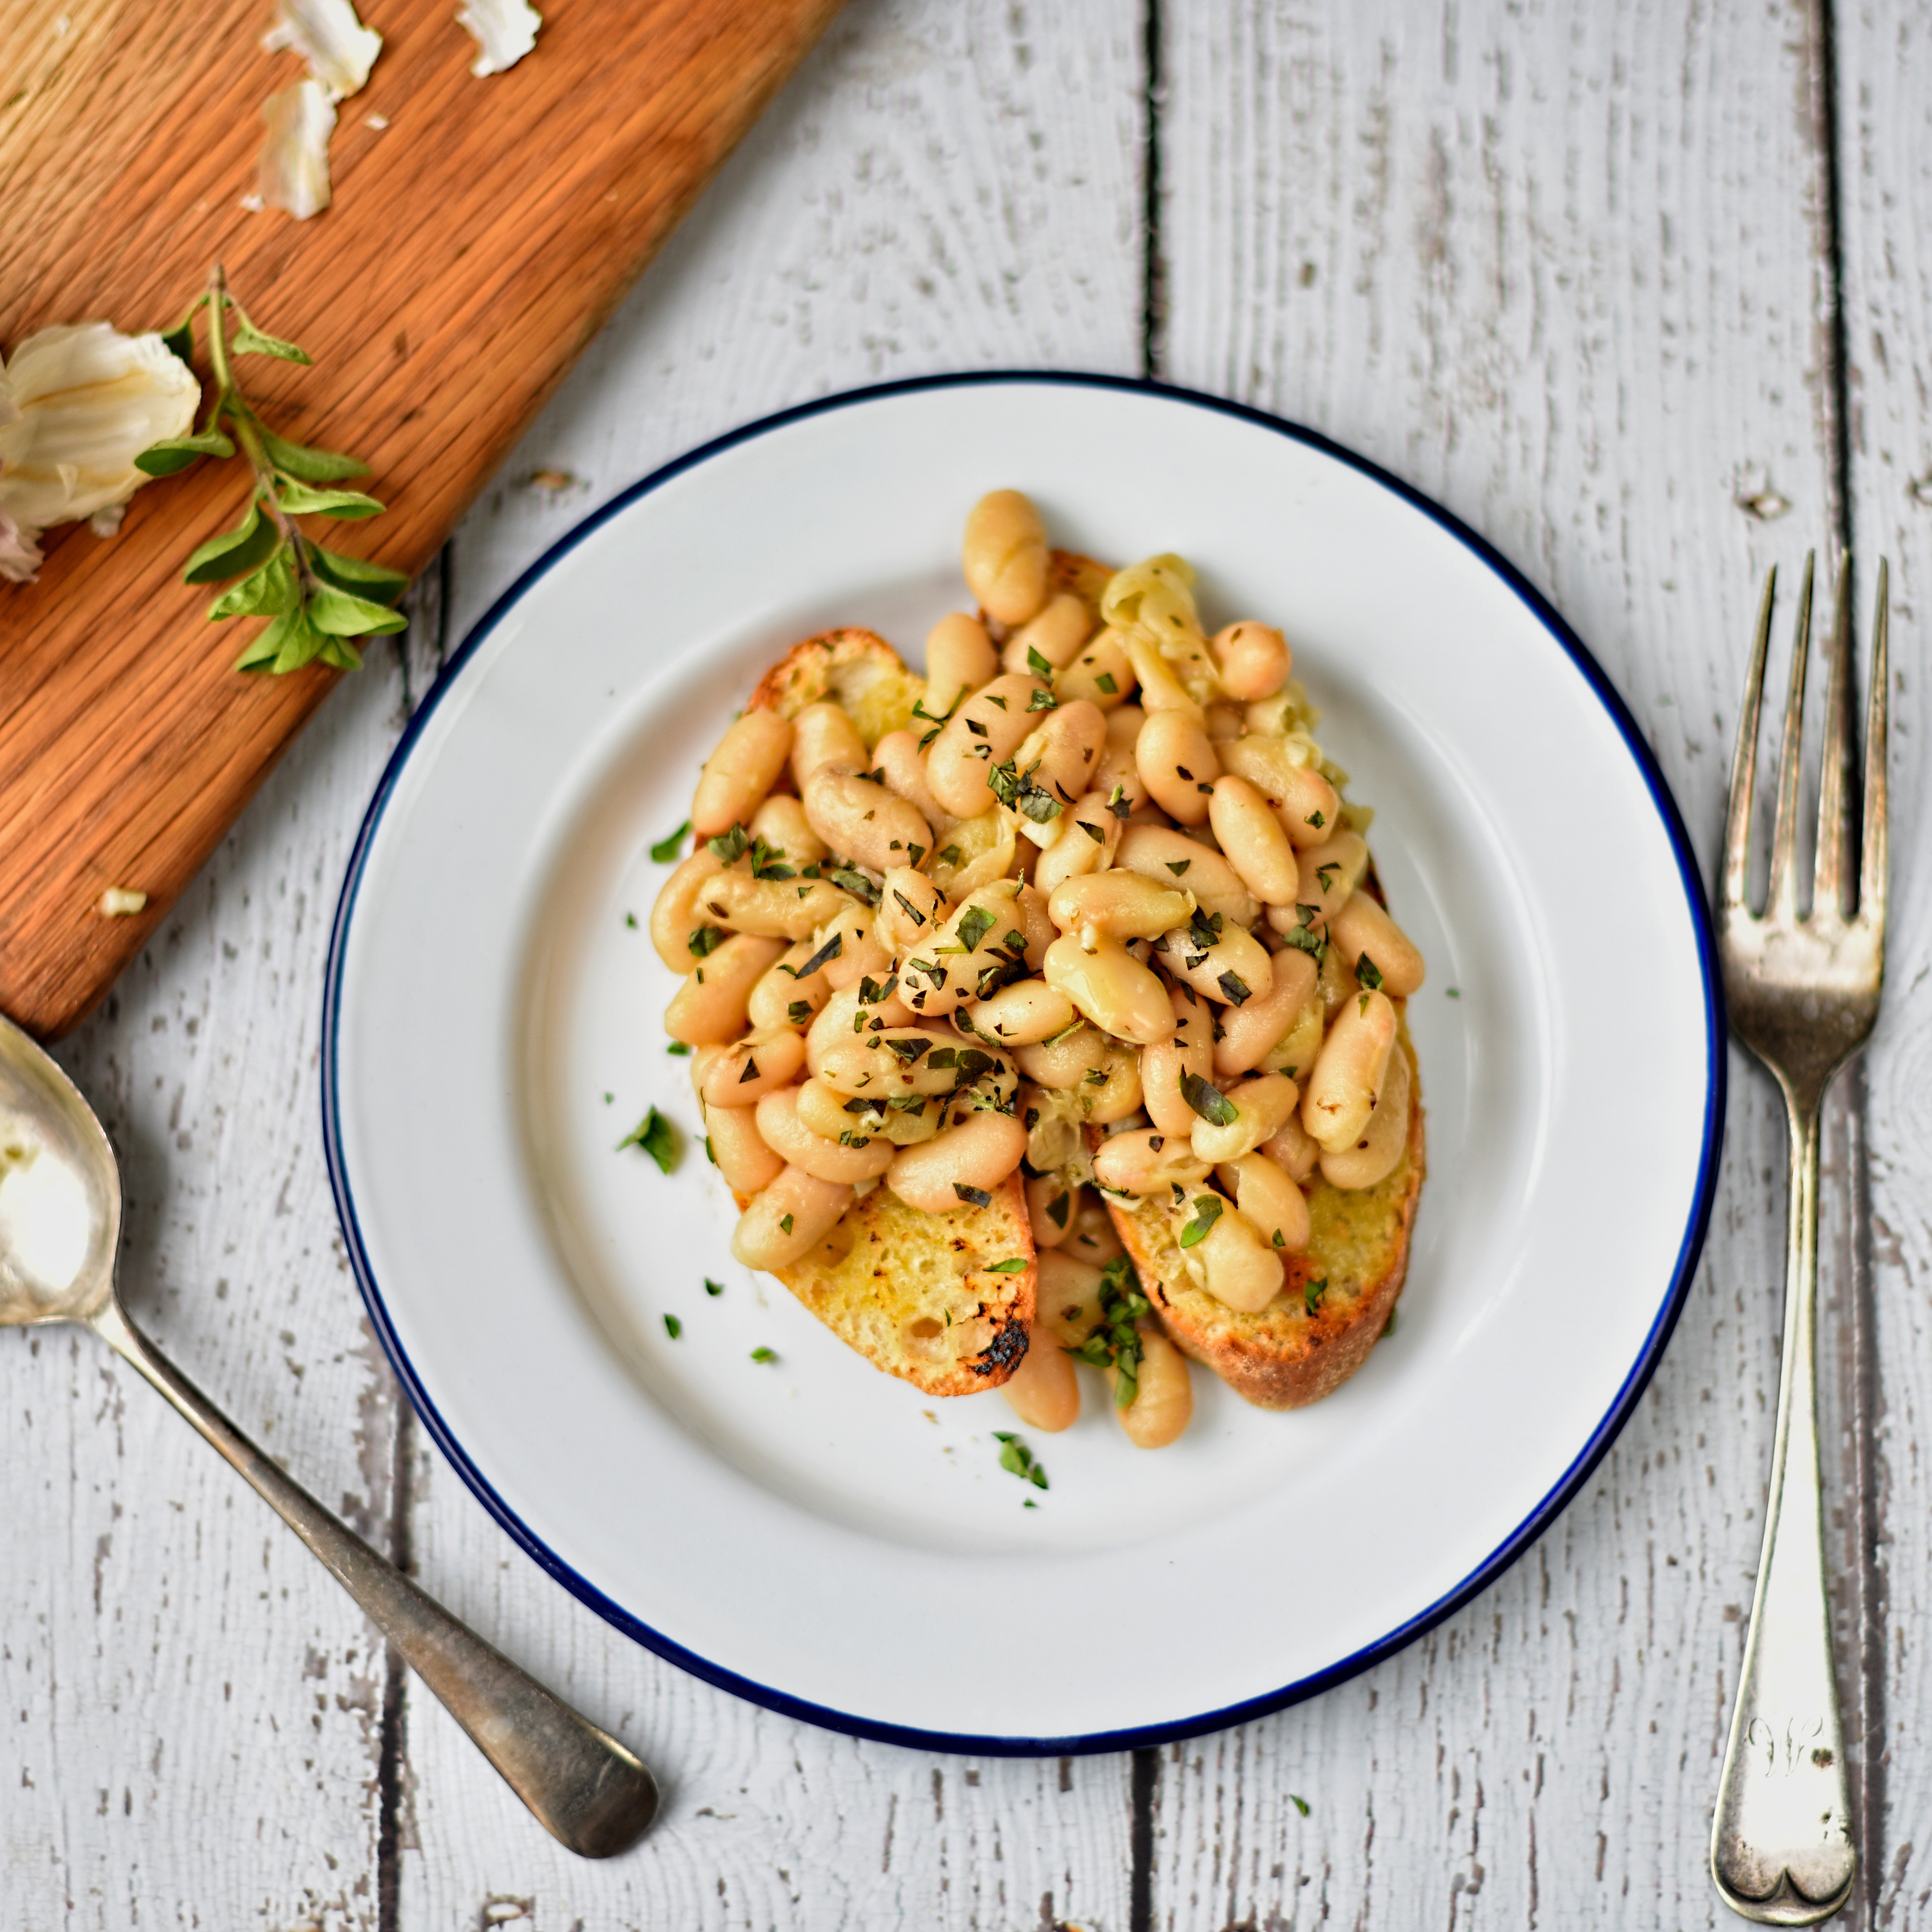 Gardeners Kitchen Cannellini Beans With Garlic And Oregano The Circus Gardeners